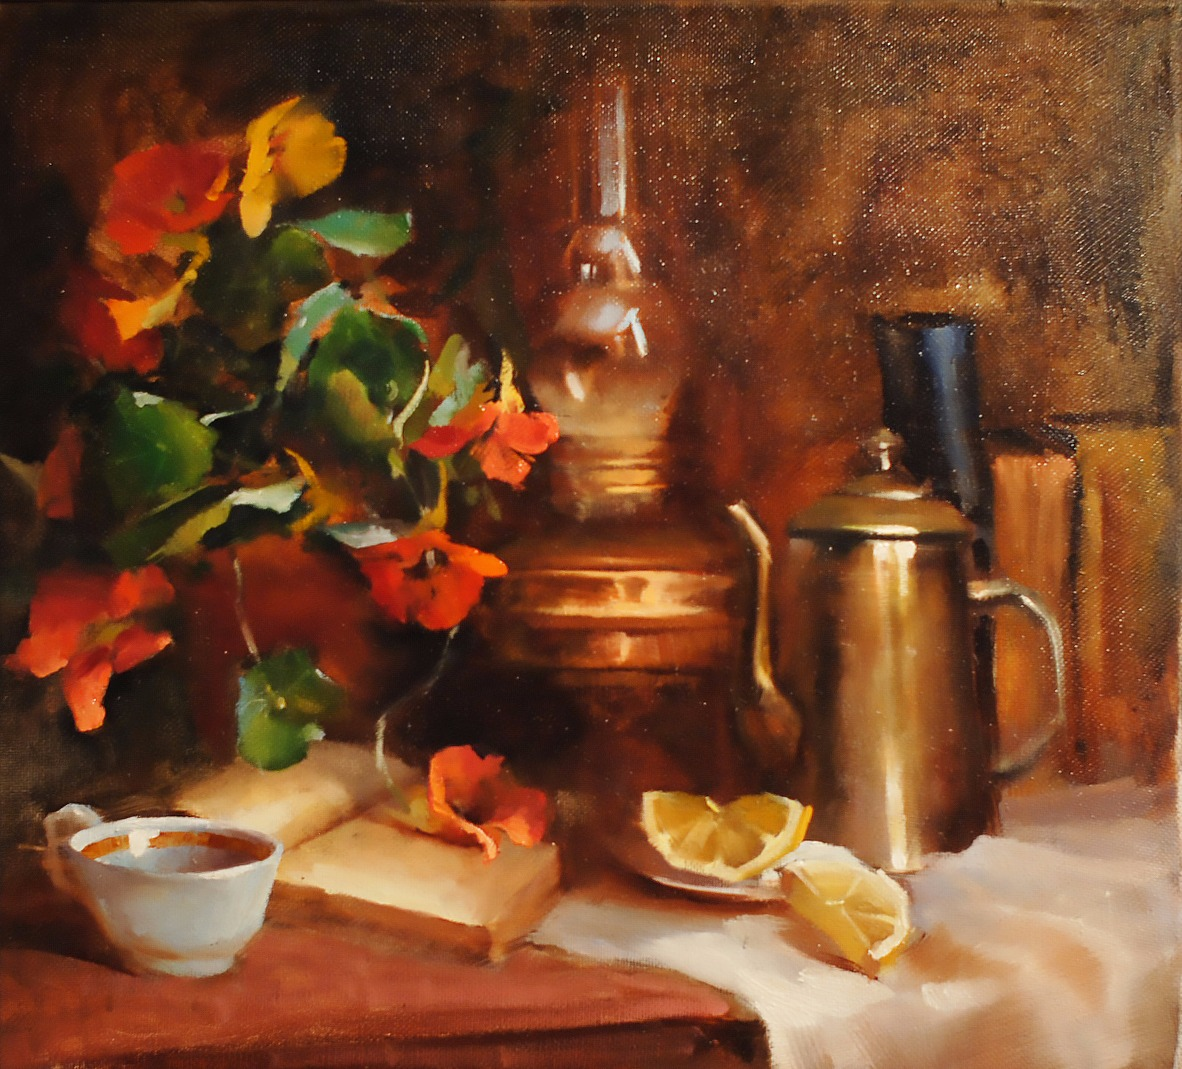 Golden still-life